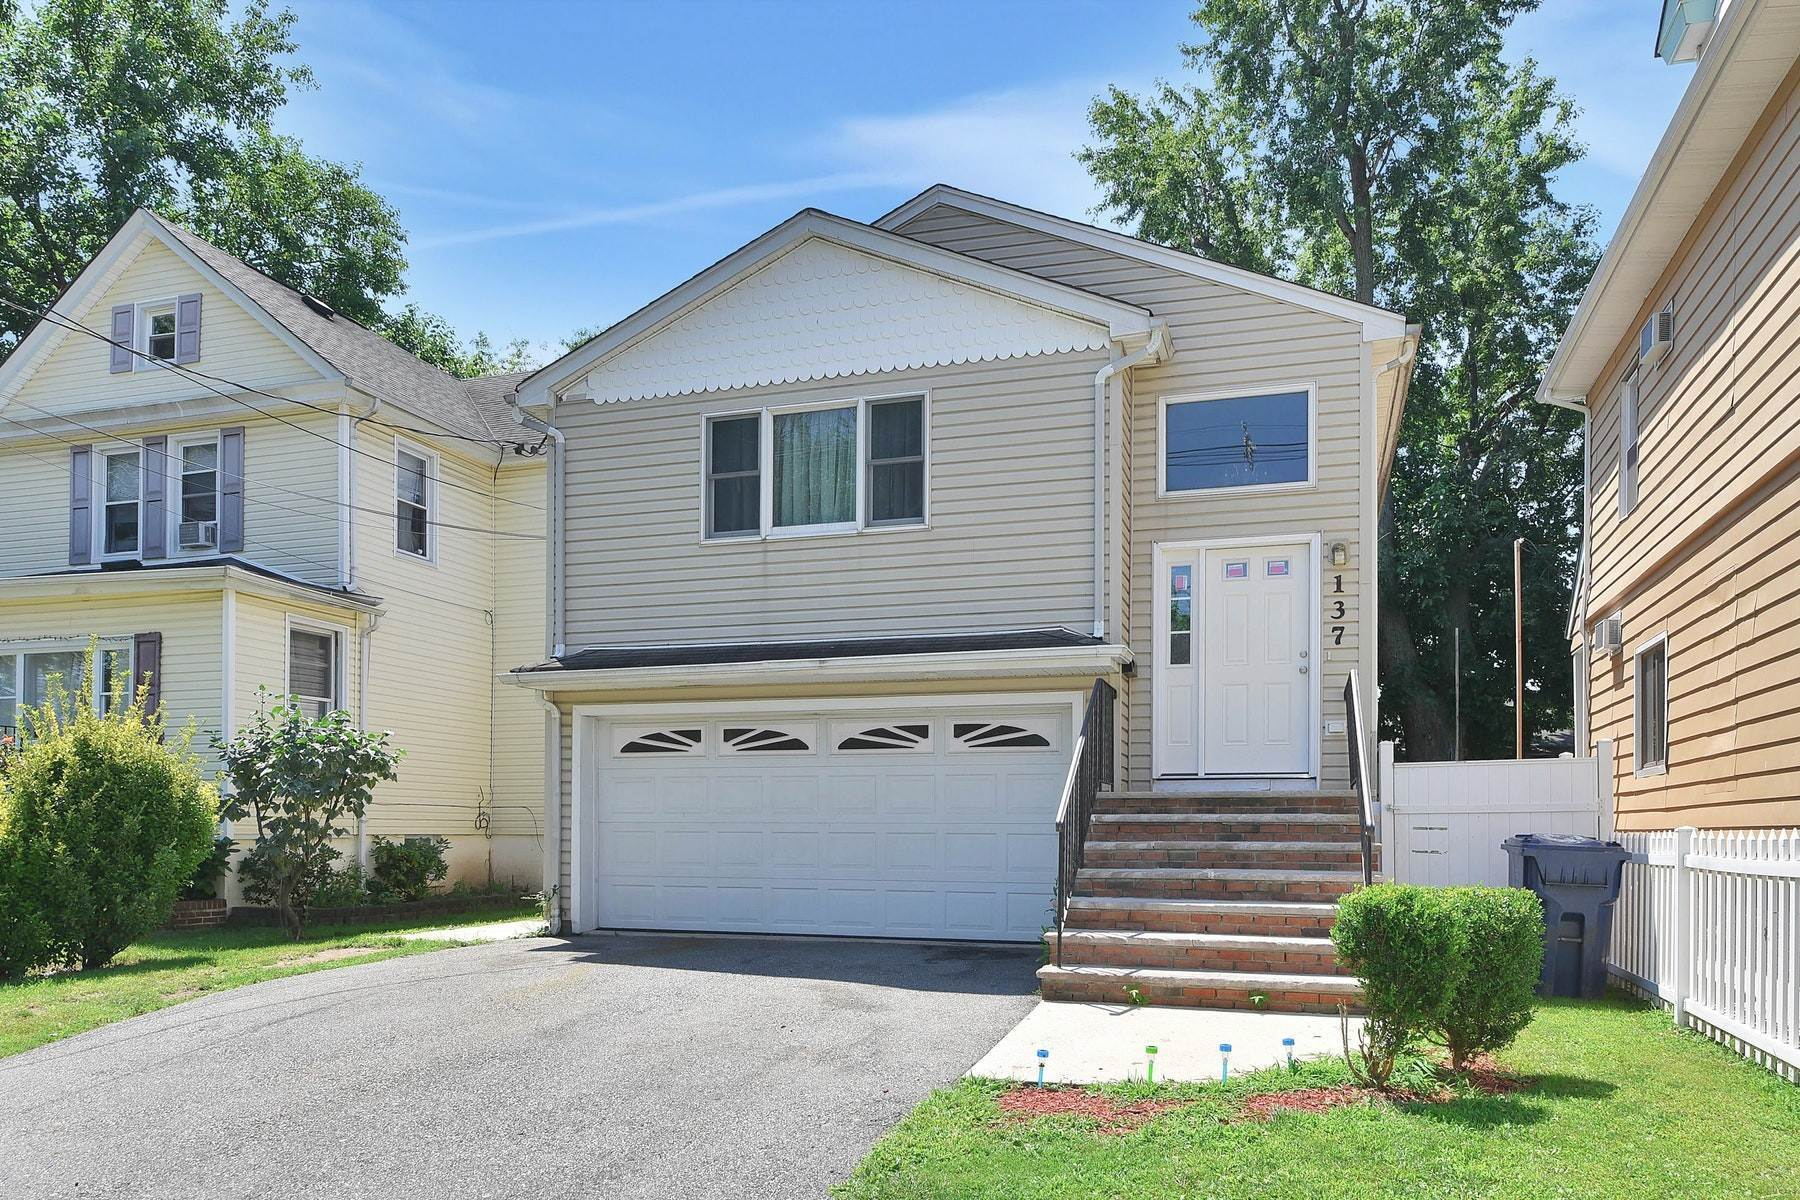 Multi-Family Homes for Sale at Roomy Two Family Home 137 Berry Street Hackensack, New Jersey 07601 United States